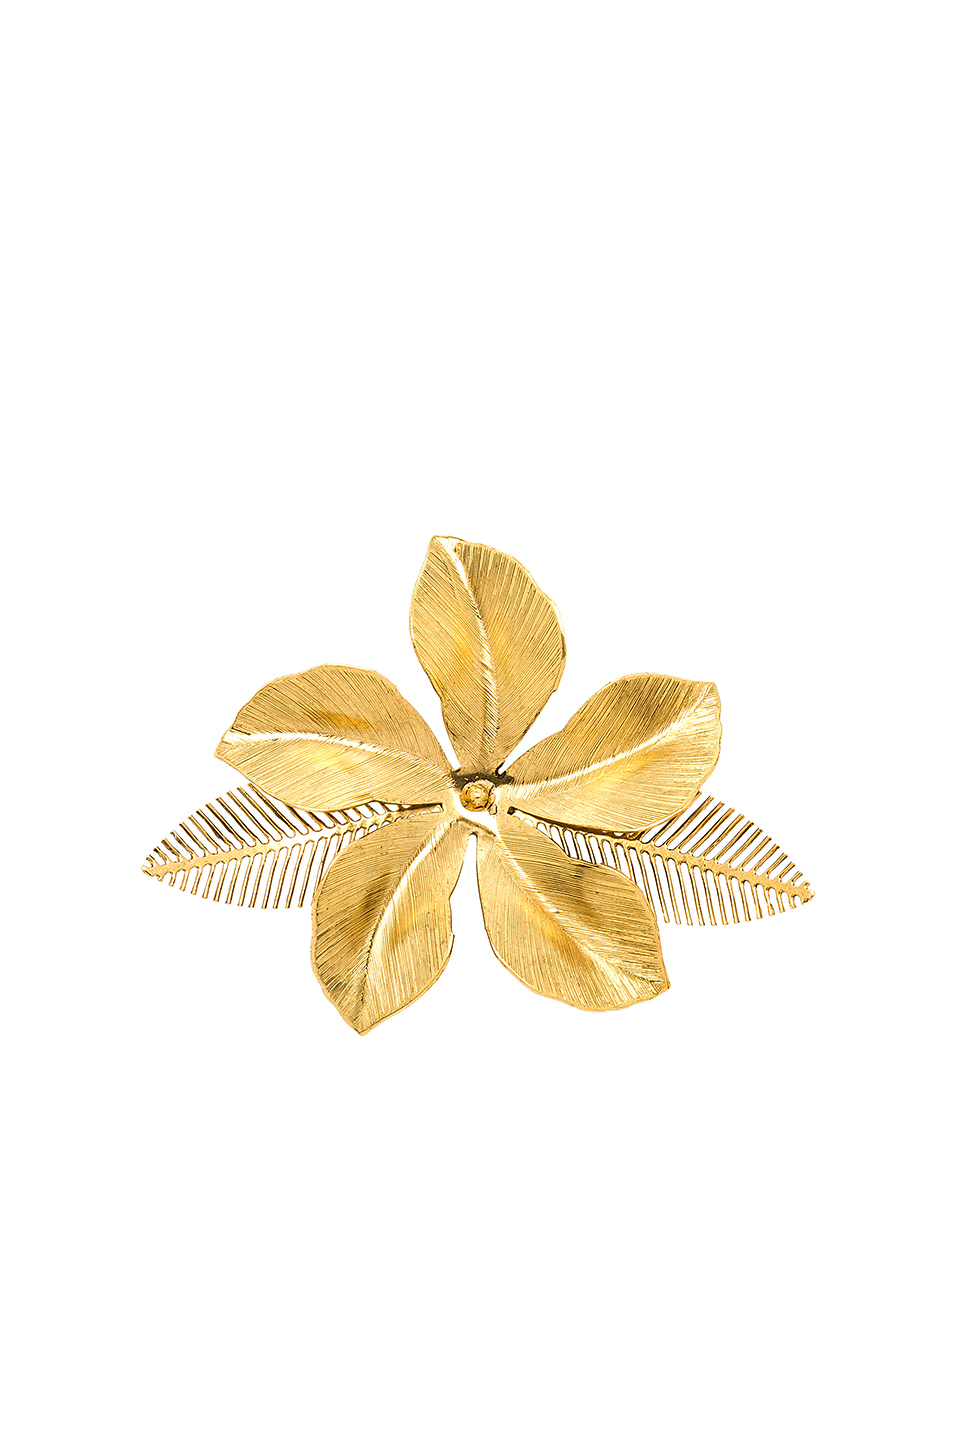 [RENTAL]Jennifer Behr[Gold Hibiscus Barrette]